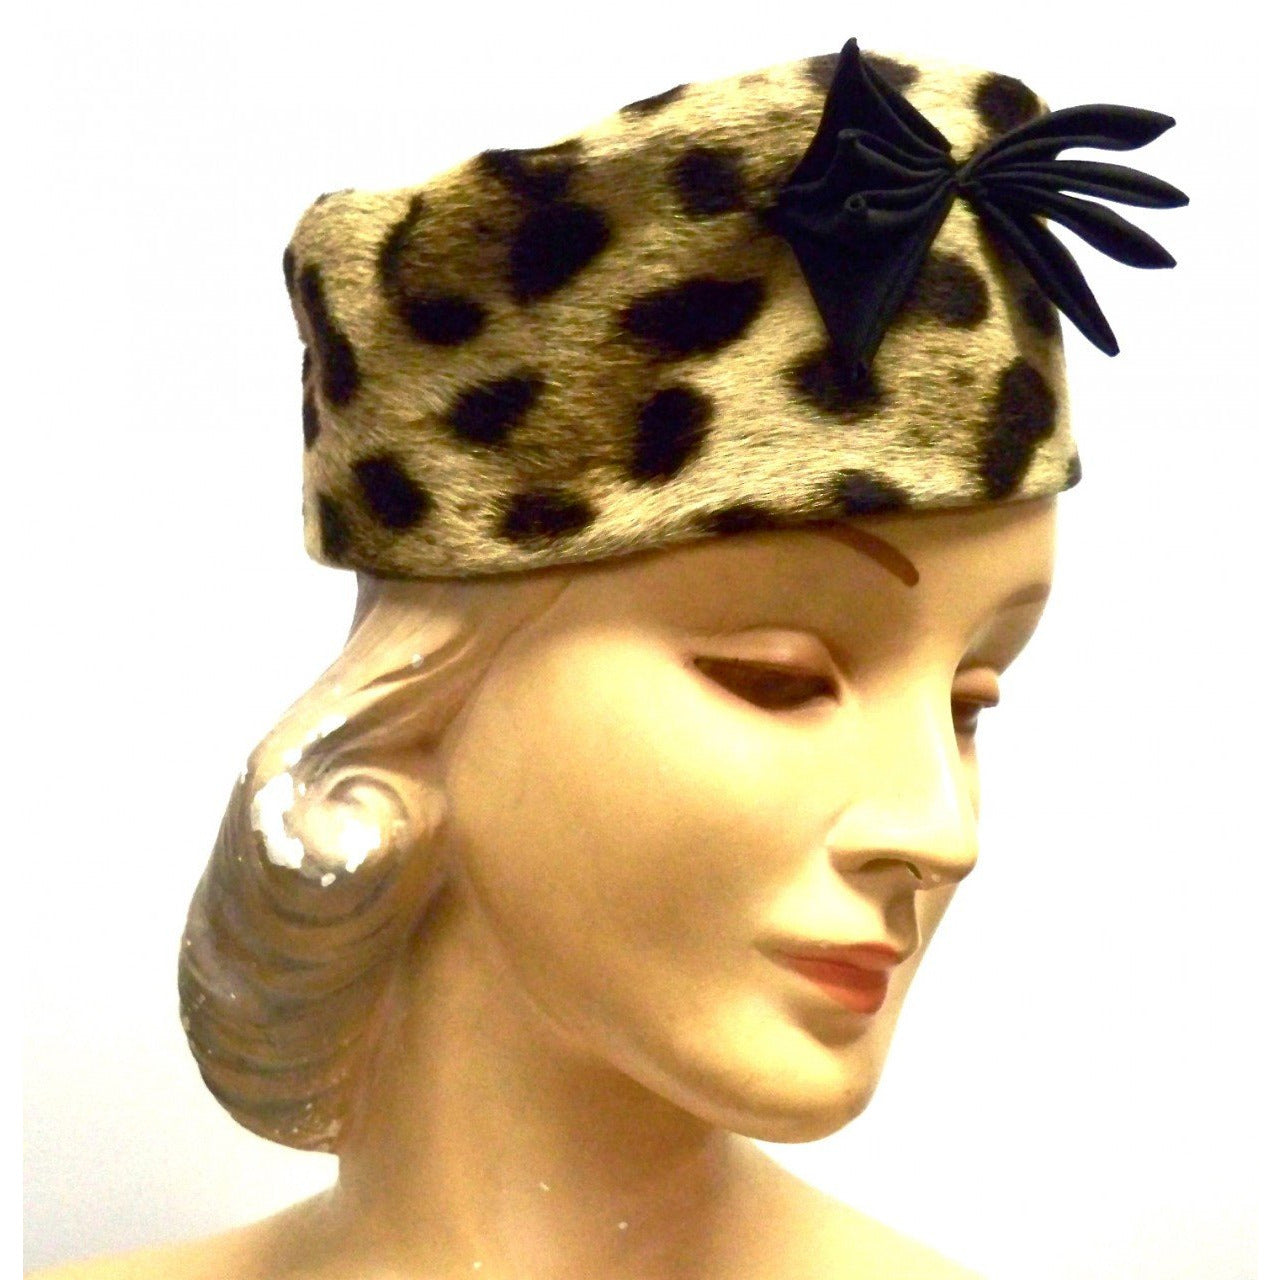 Vintage Ladies Pillbox Hat Genuine Cheetah Fur 1950s - The Best Vintage Clothing  - 1